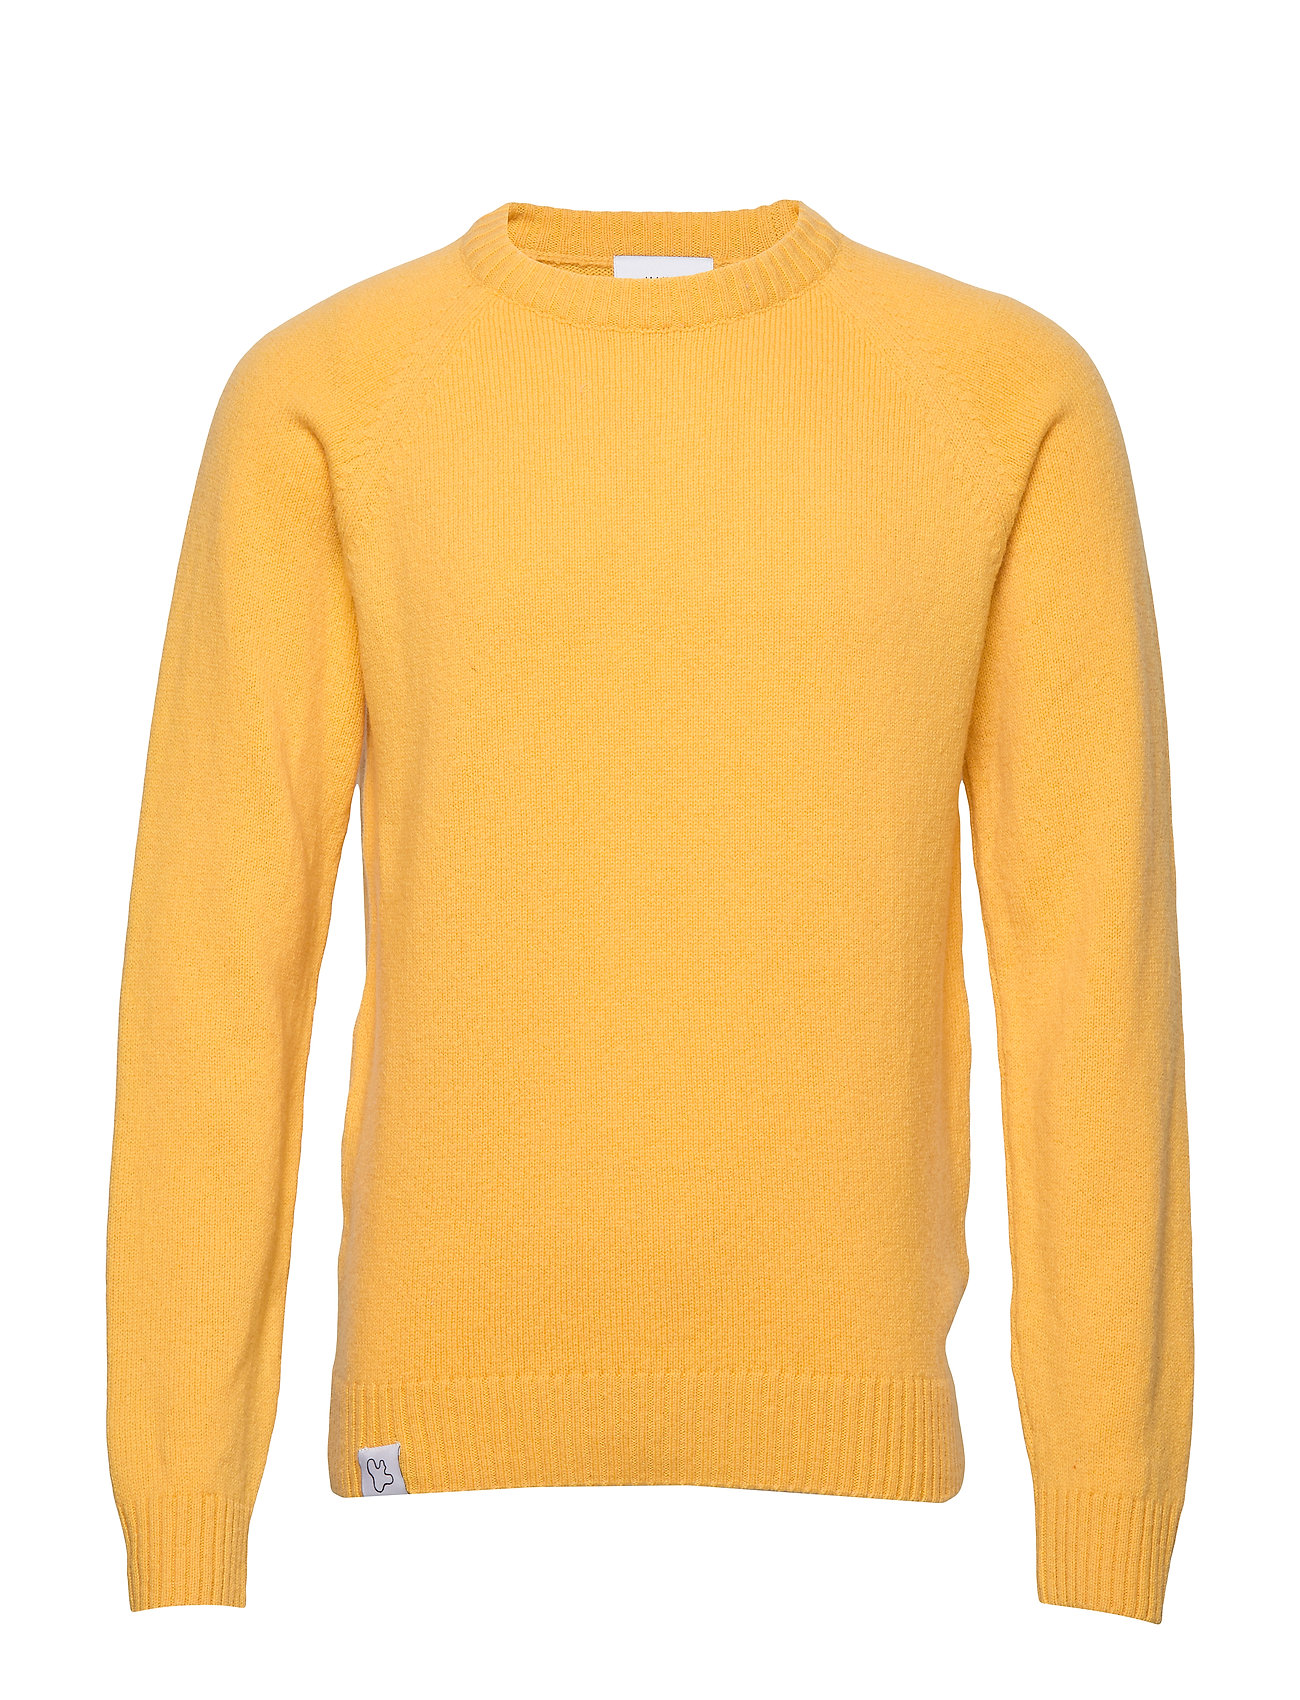 Makia Studio Knit - YELLOW